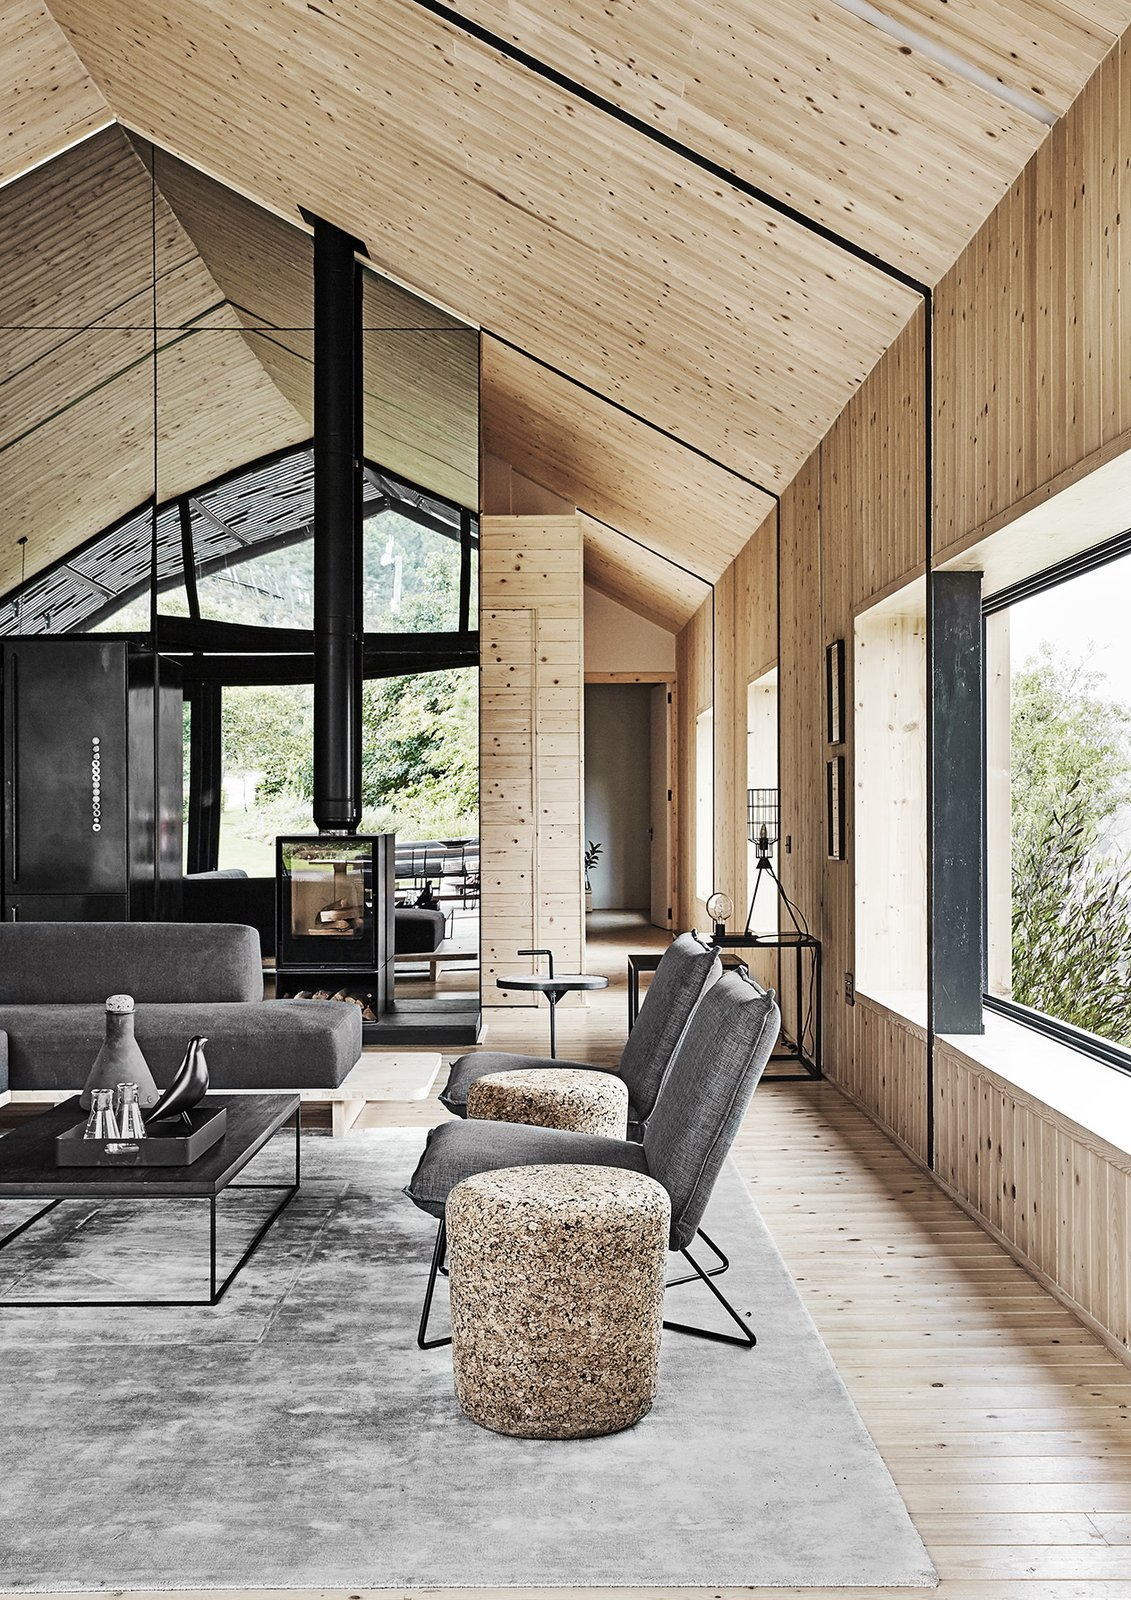 Living, Medium Hardwood, Coffee Tables, End Tables, Two-Sided, Sofa, Chair, and Wood Burning Scott set the windows into deep recesses.  Best Living Sofa Two-Sided Photos from A Hotelier Realizes a Modern Barn for His Family's Retreat in South Africa